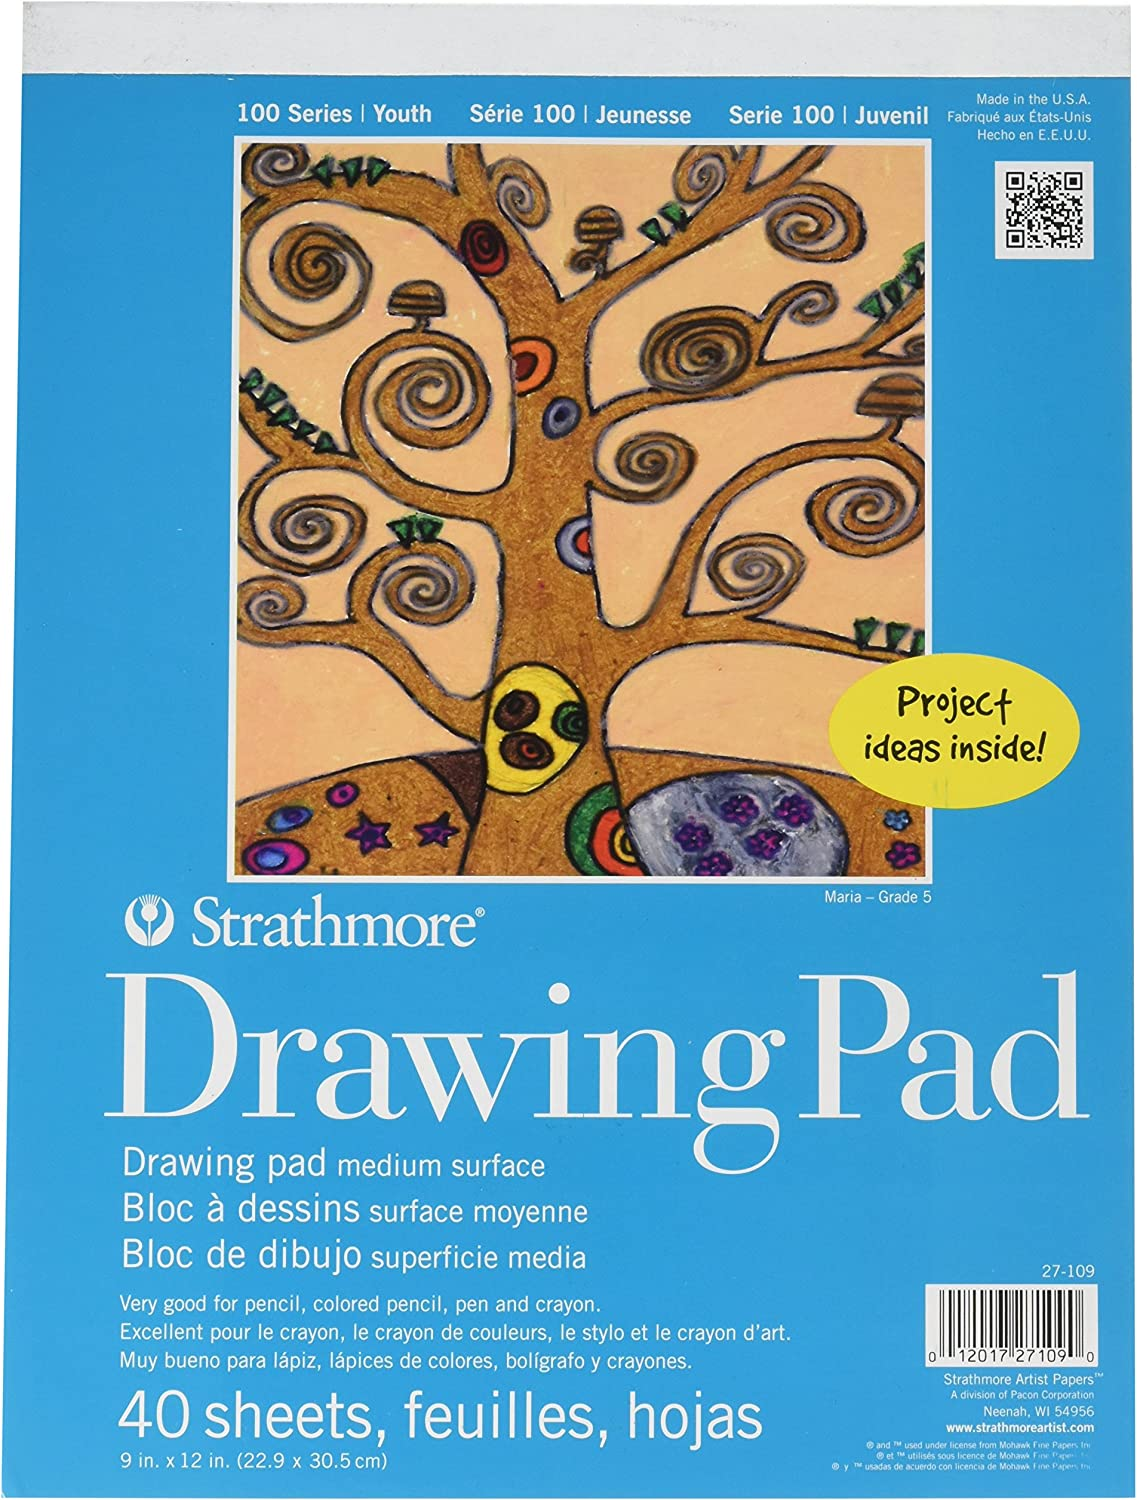 """Strathmore 100 Series Youth Drawing Pad, 9 by 12"""", 40 Sheets: Arts, Crafts & Sewing"""